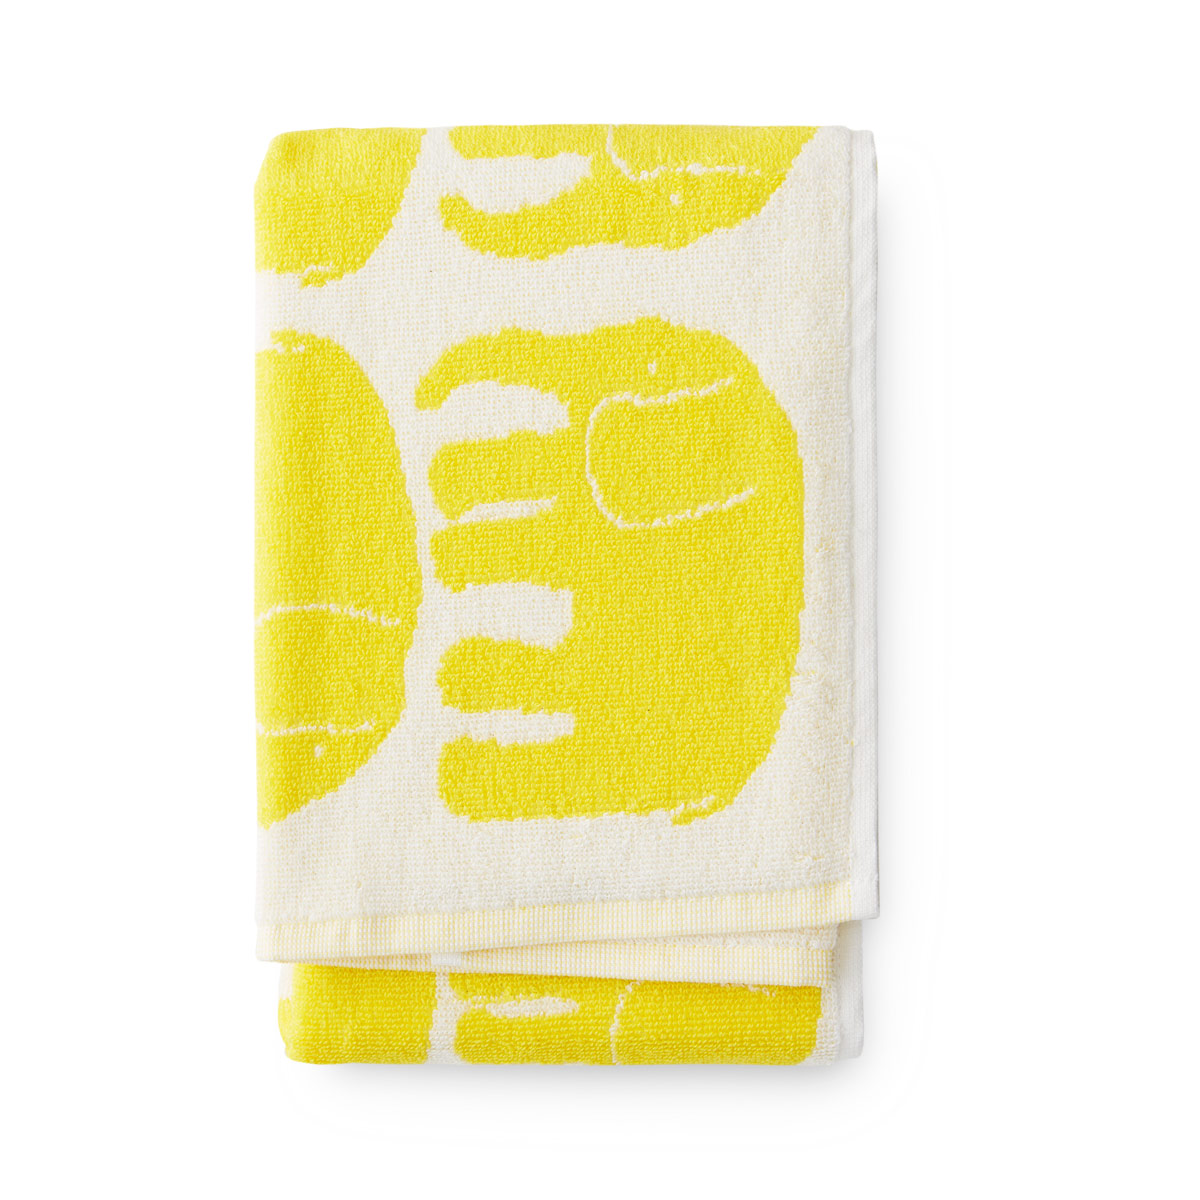 Yellow Towels Finlayson Elefantti Yellow Hand Towel Finlayson